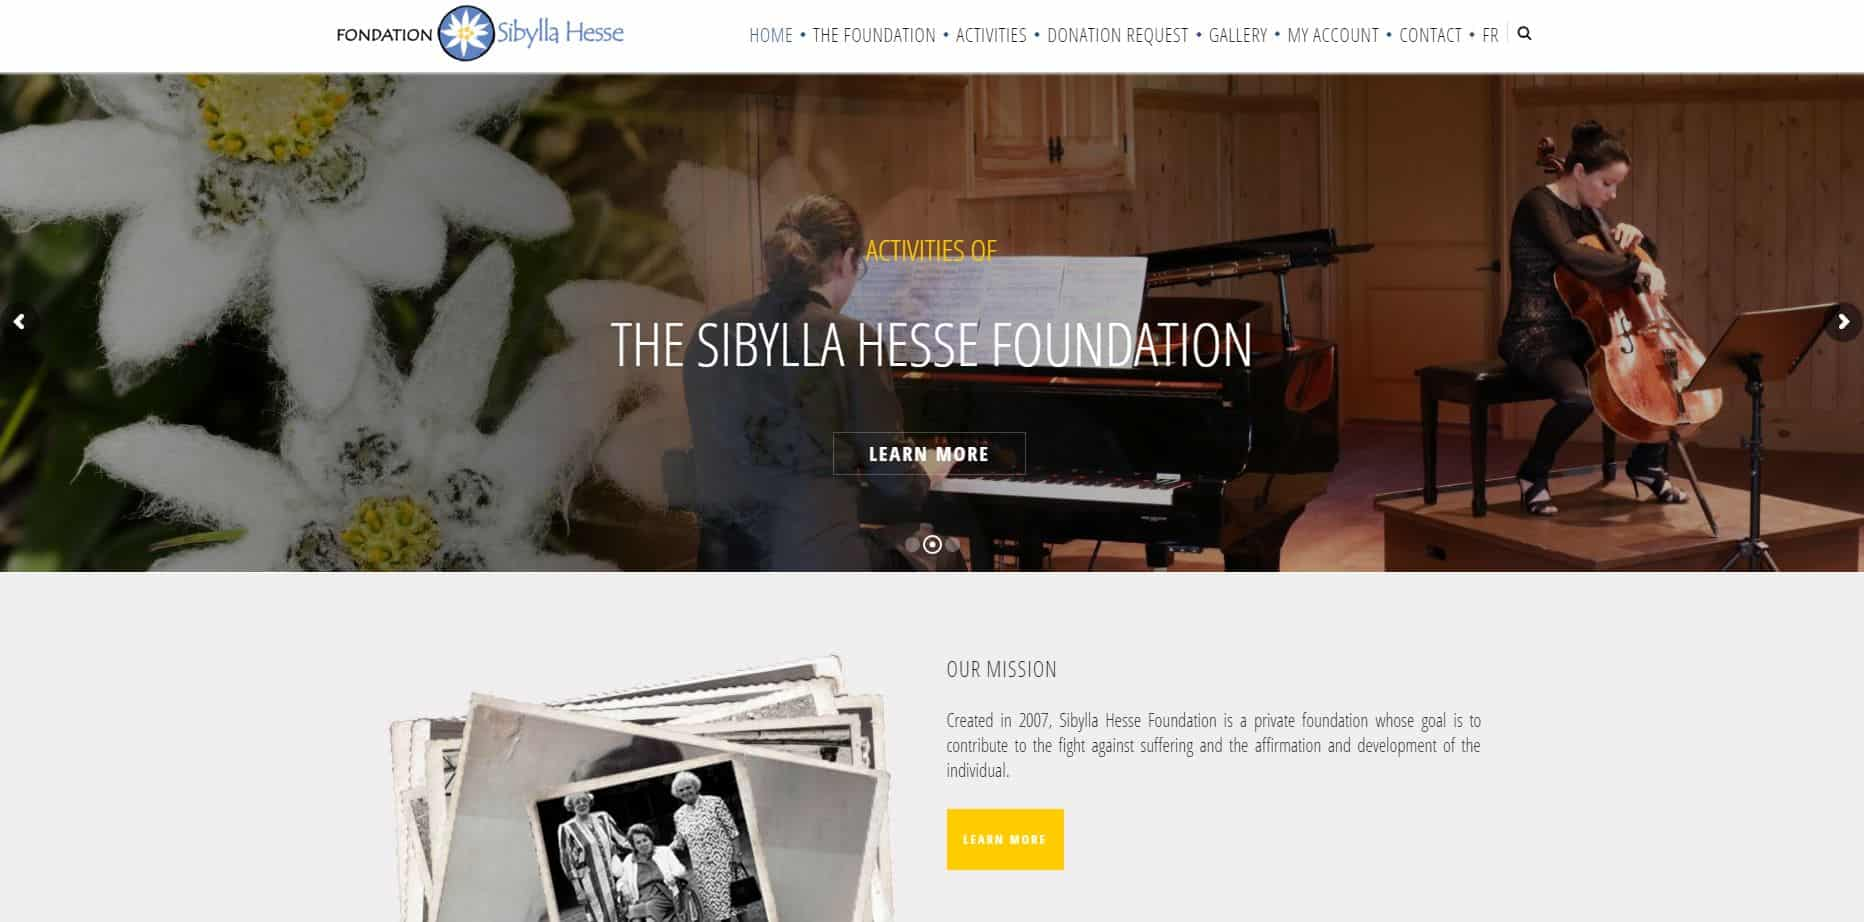 conception-web-fondation-sibylla-hesse-2-1